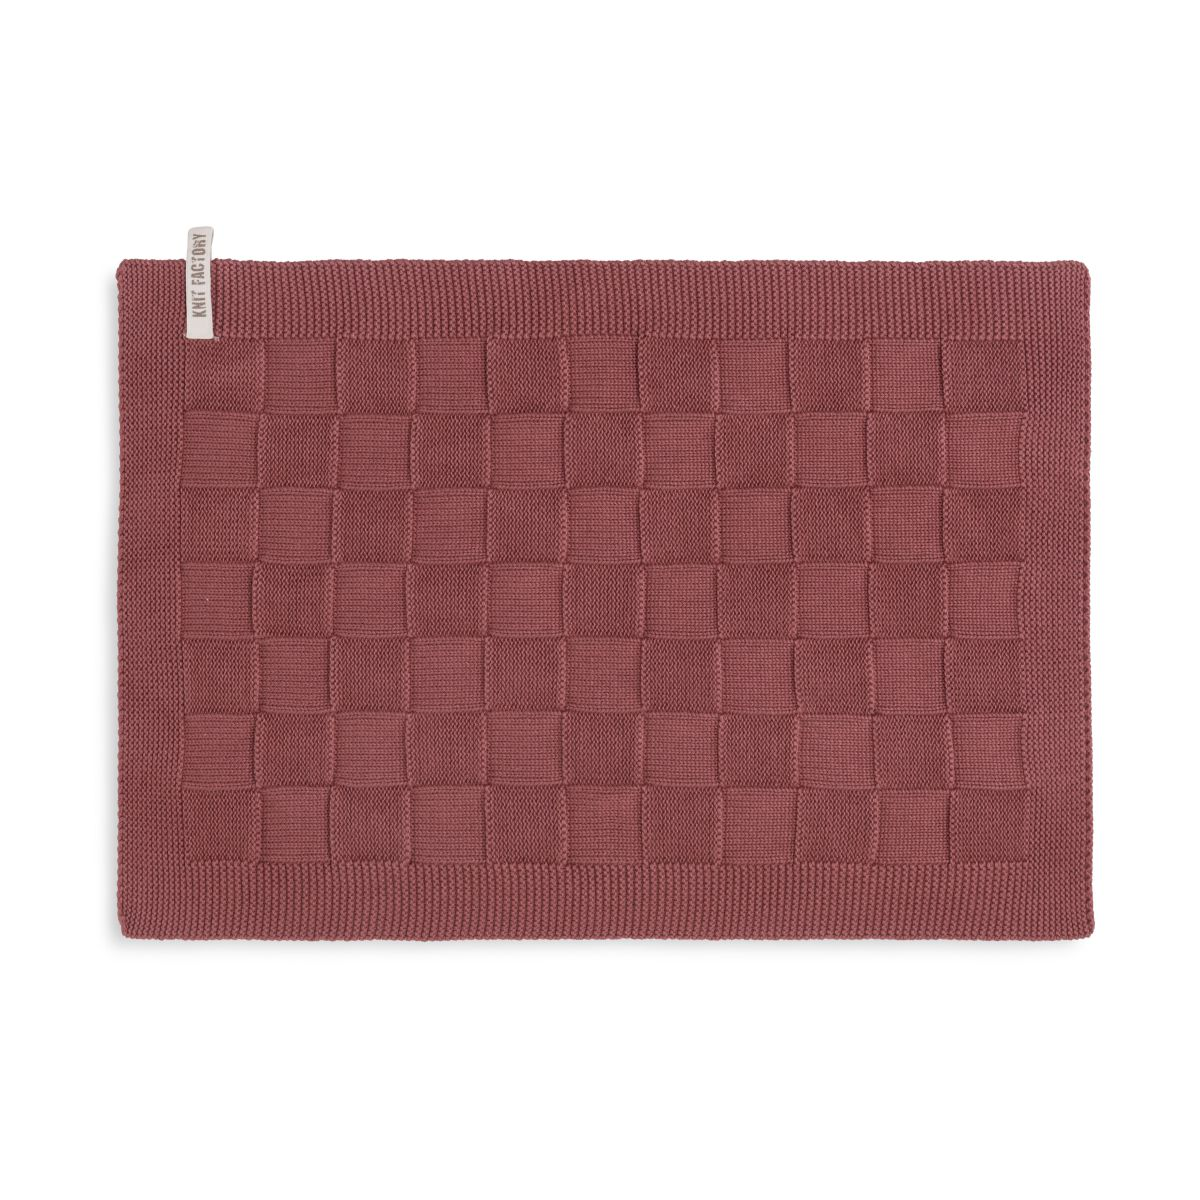 knit factory kf20020203850 placemat uni stone red 1